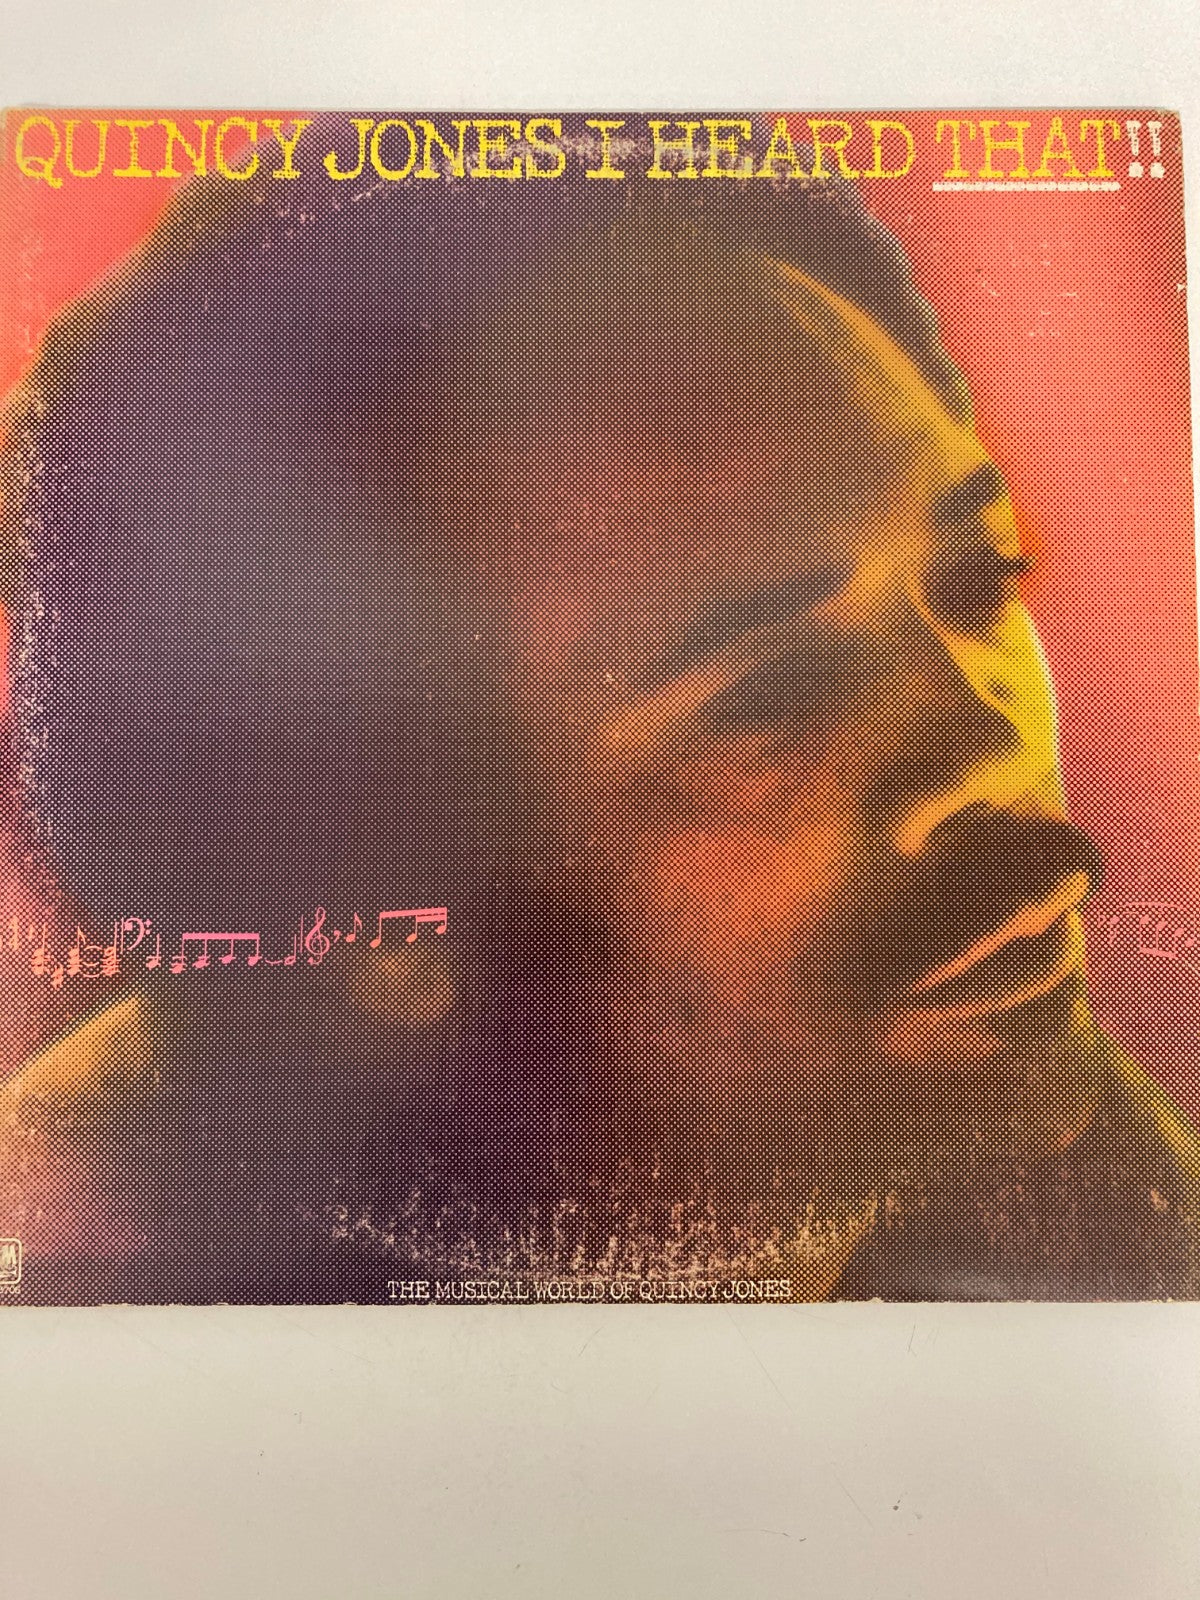 Quincy Jones - I Heard That!! Vinyl